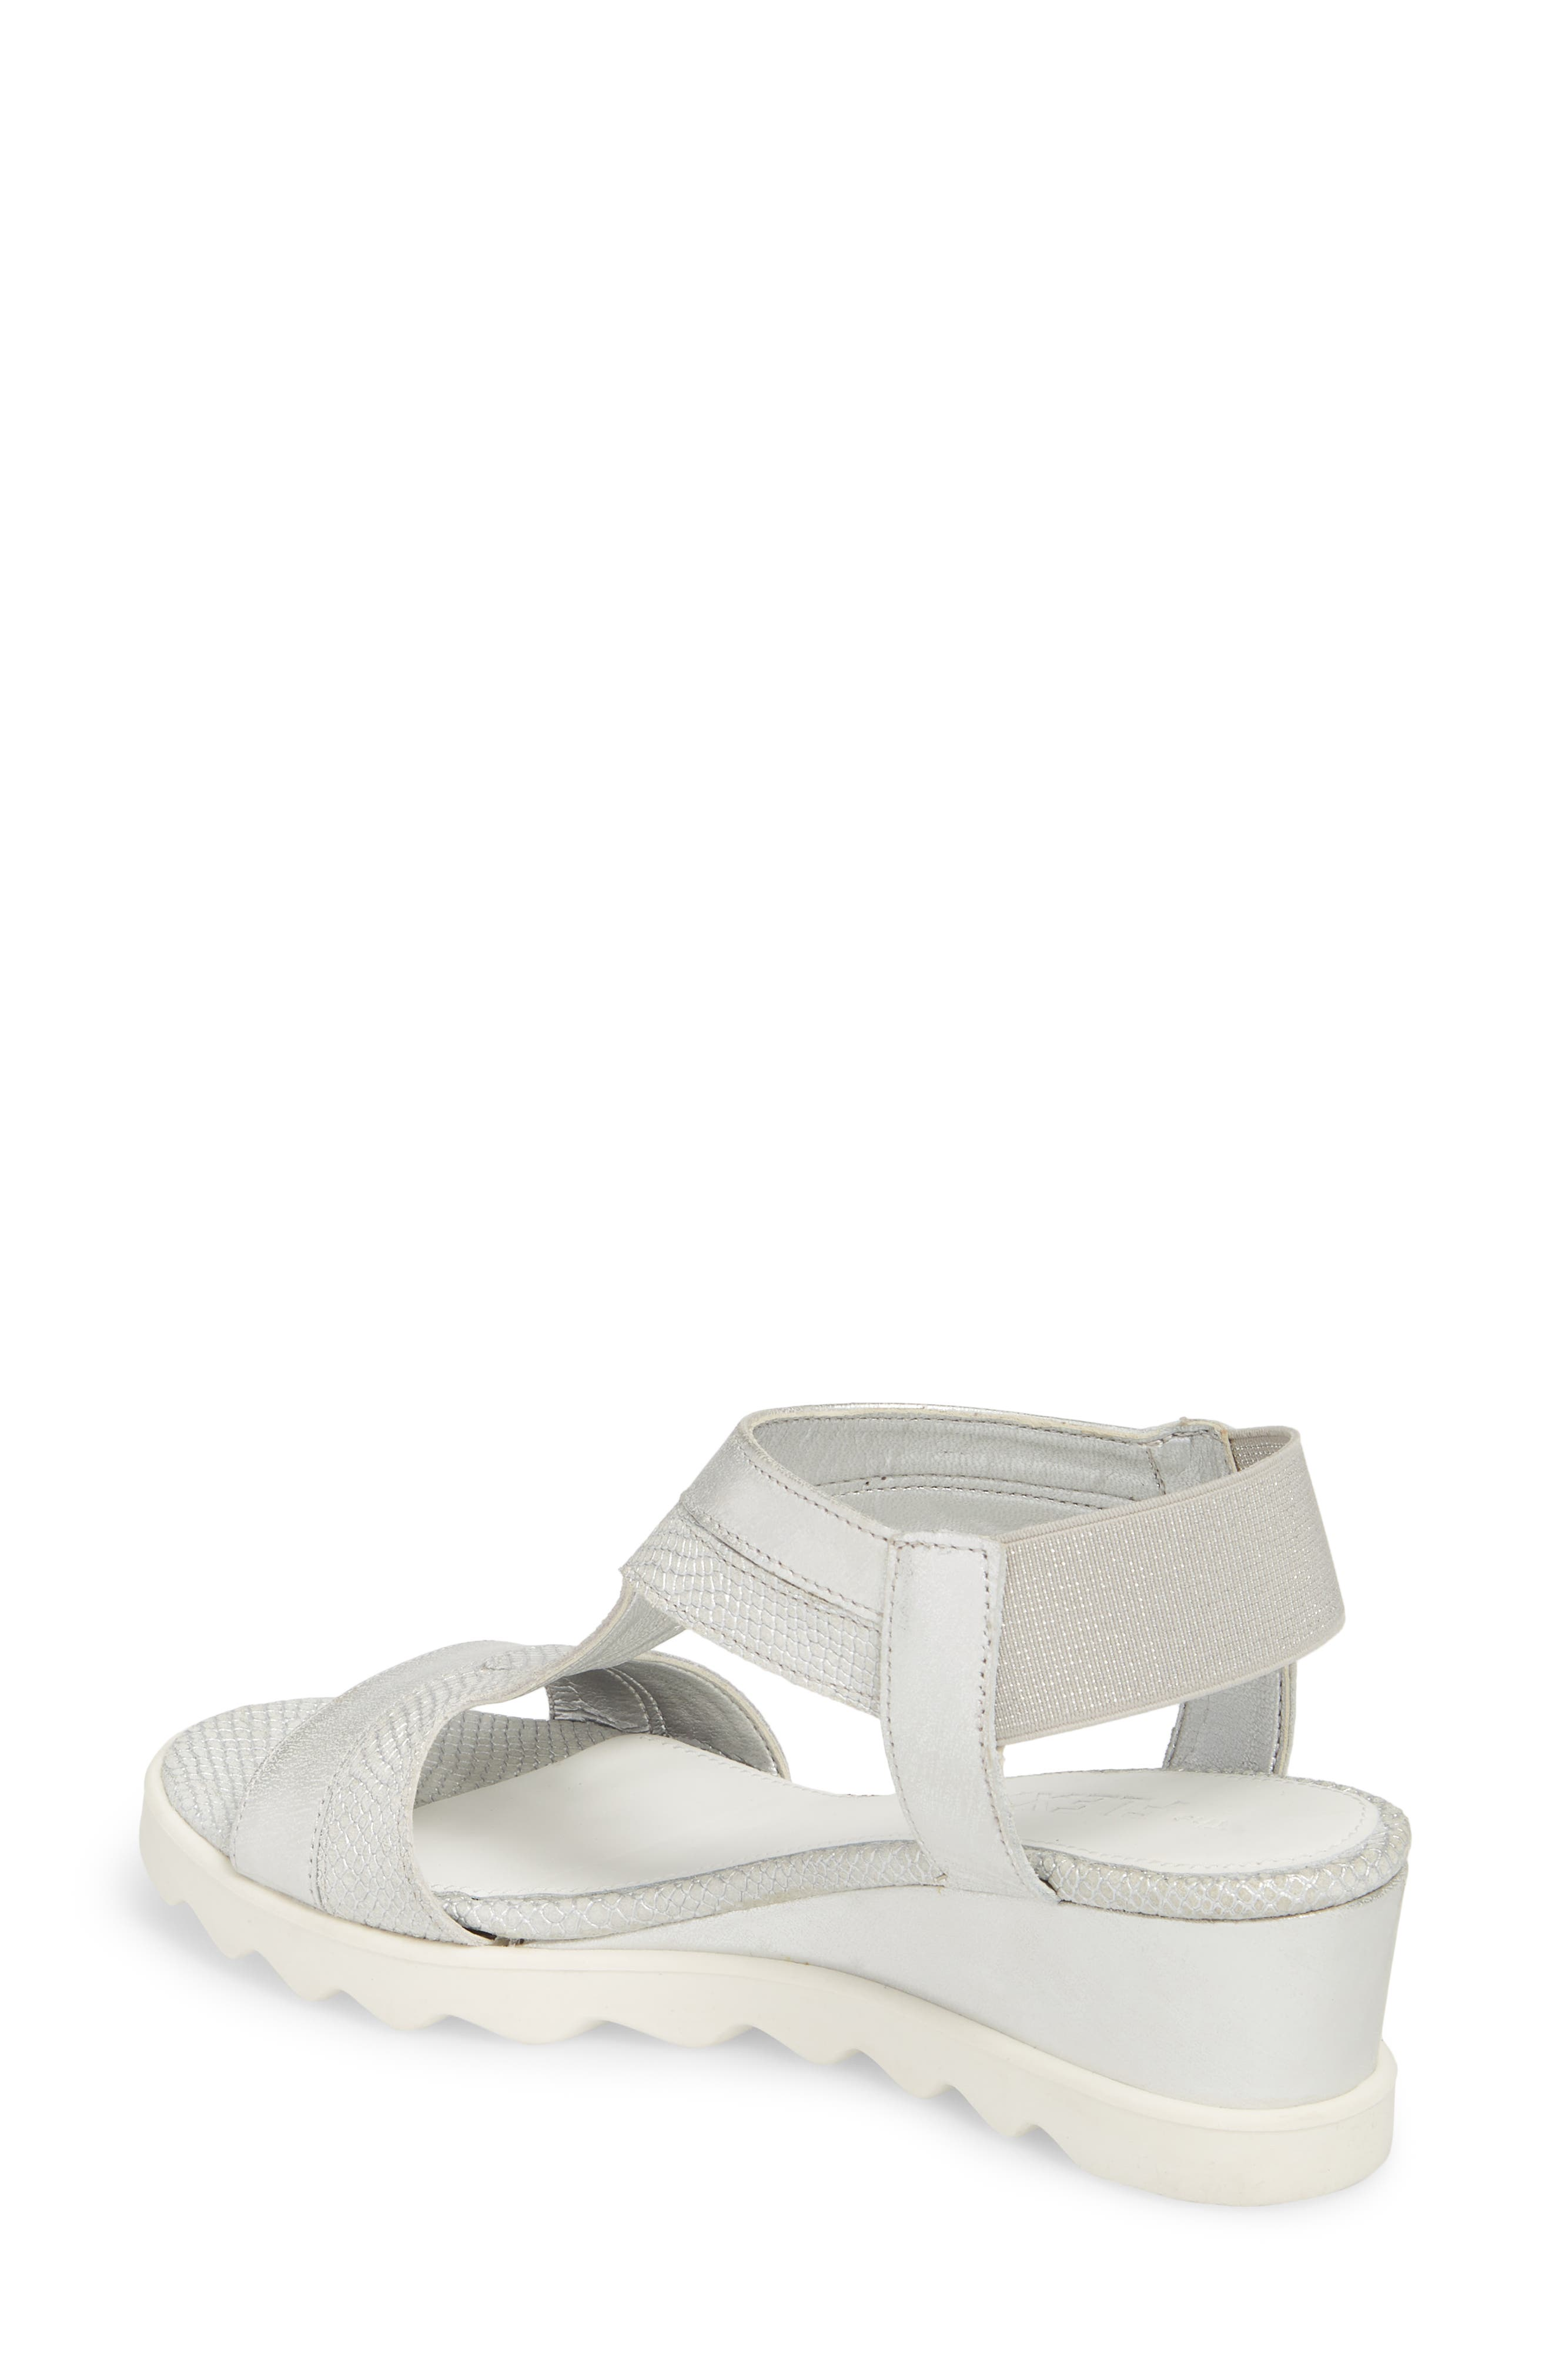 Give A Hoot Wedge Sandal,                             Alternate thumbnail 2, color,                             Silver Leather